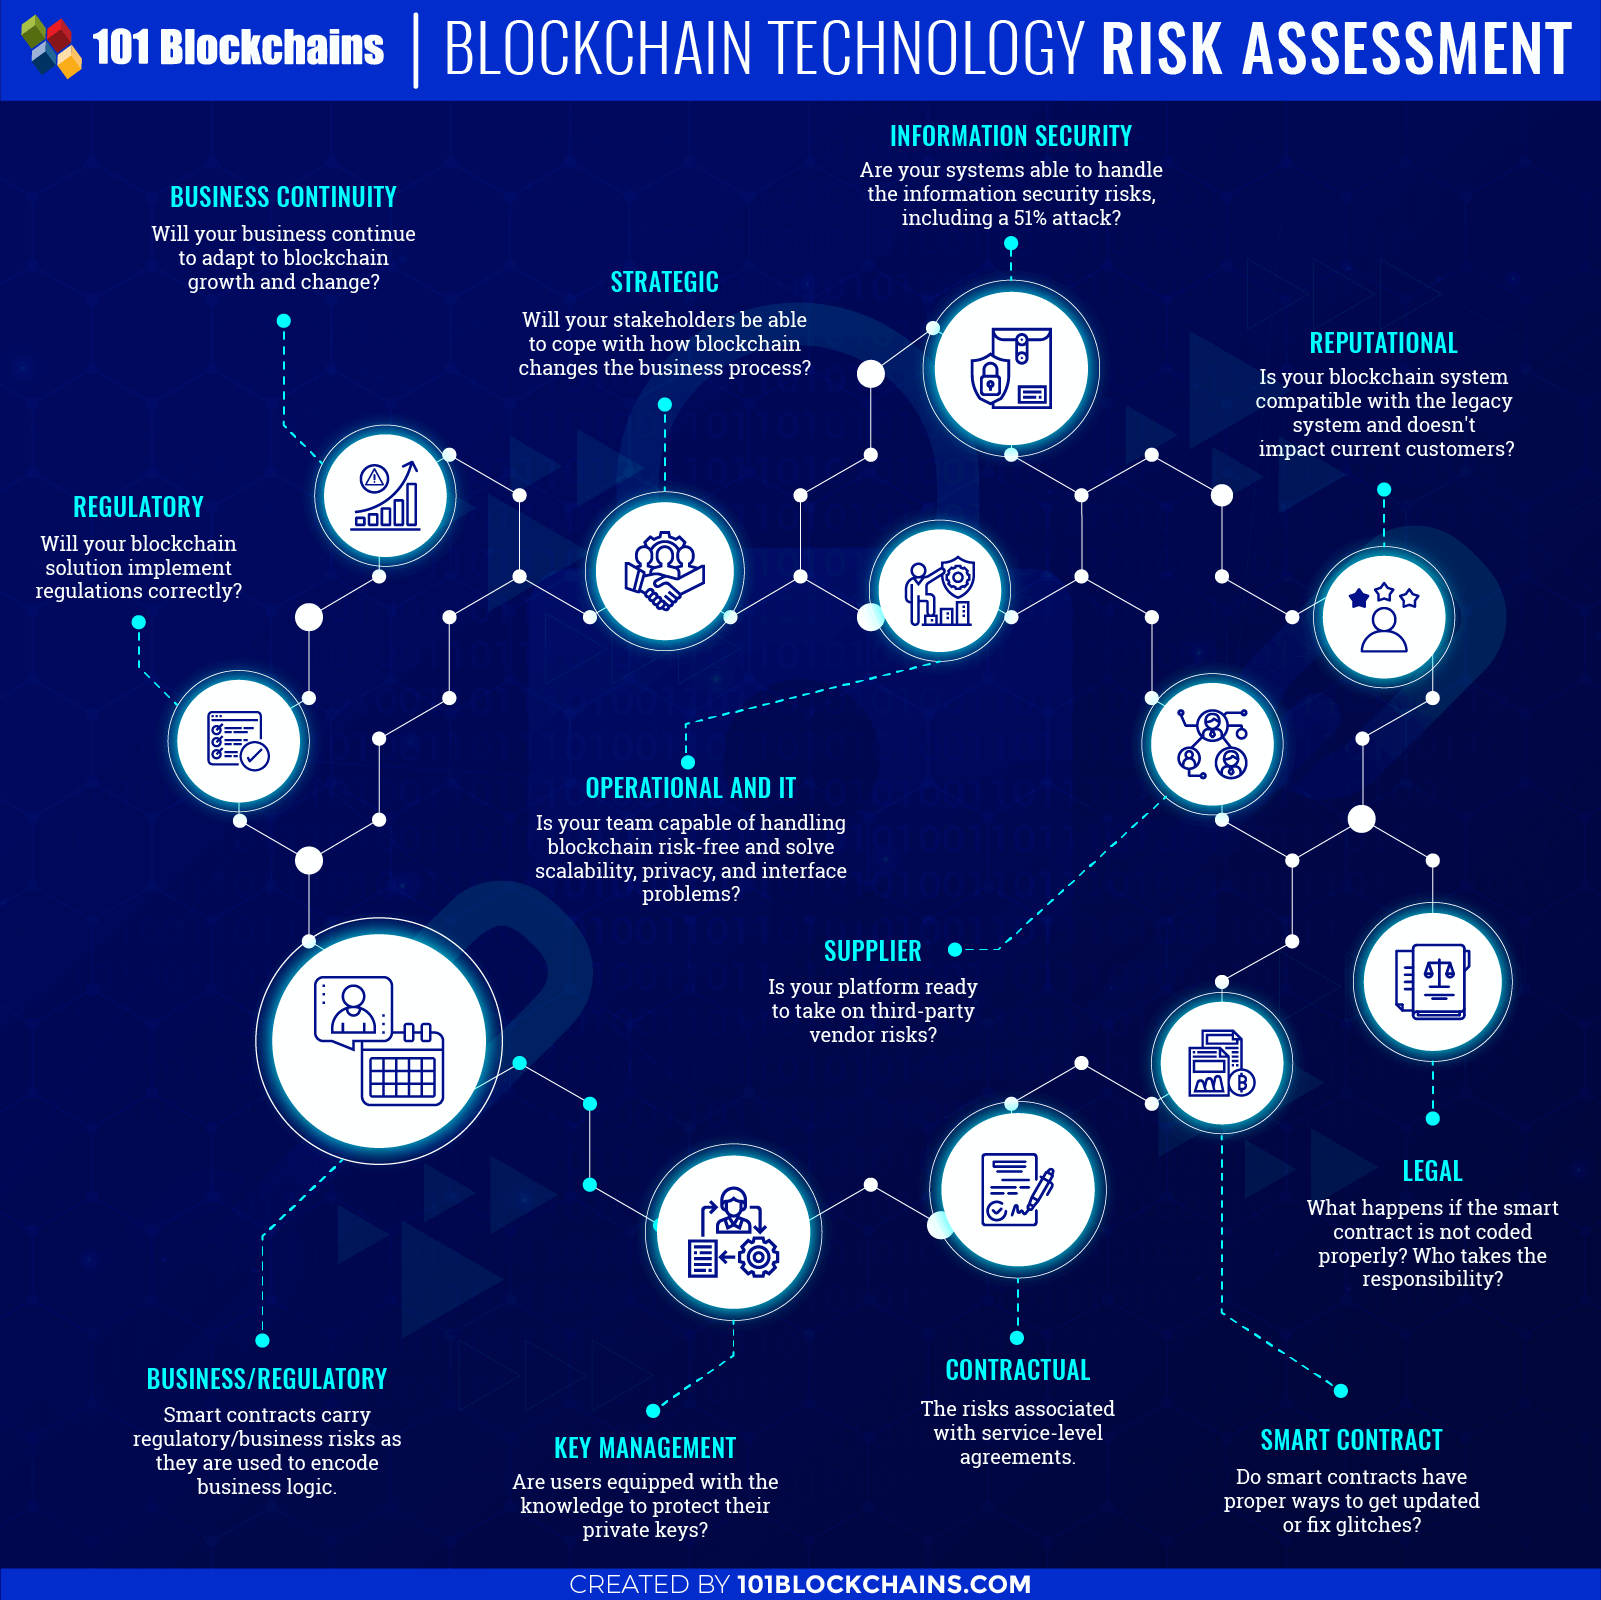 BLOCKCHAIN RISK ASSESSMENT